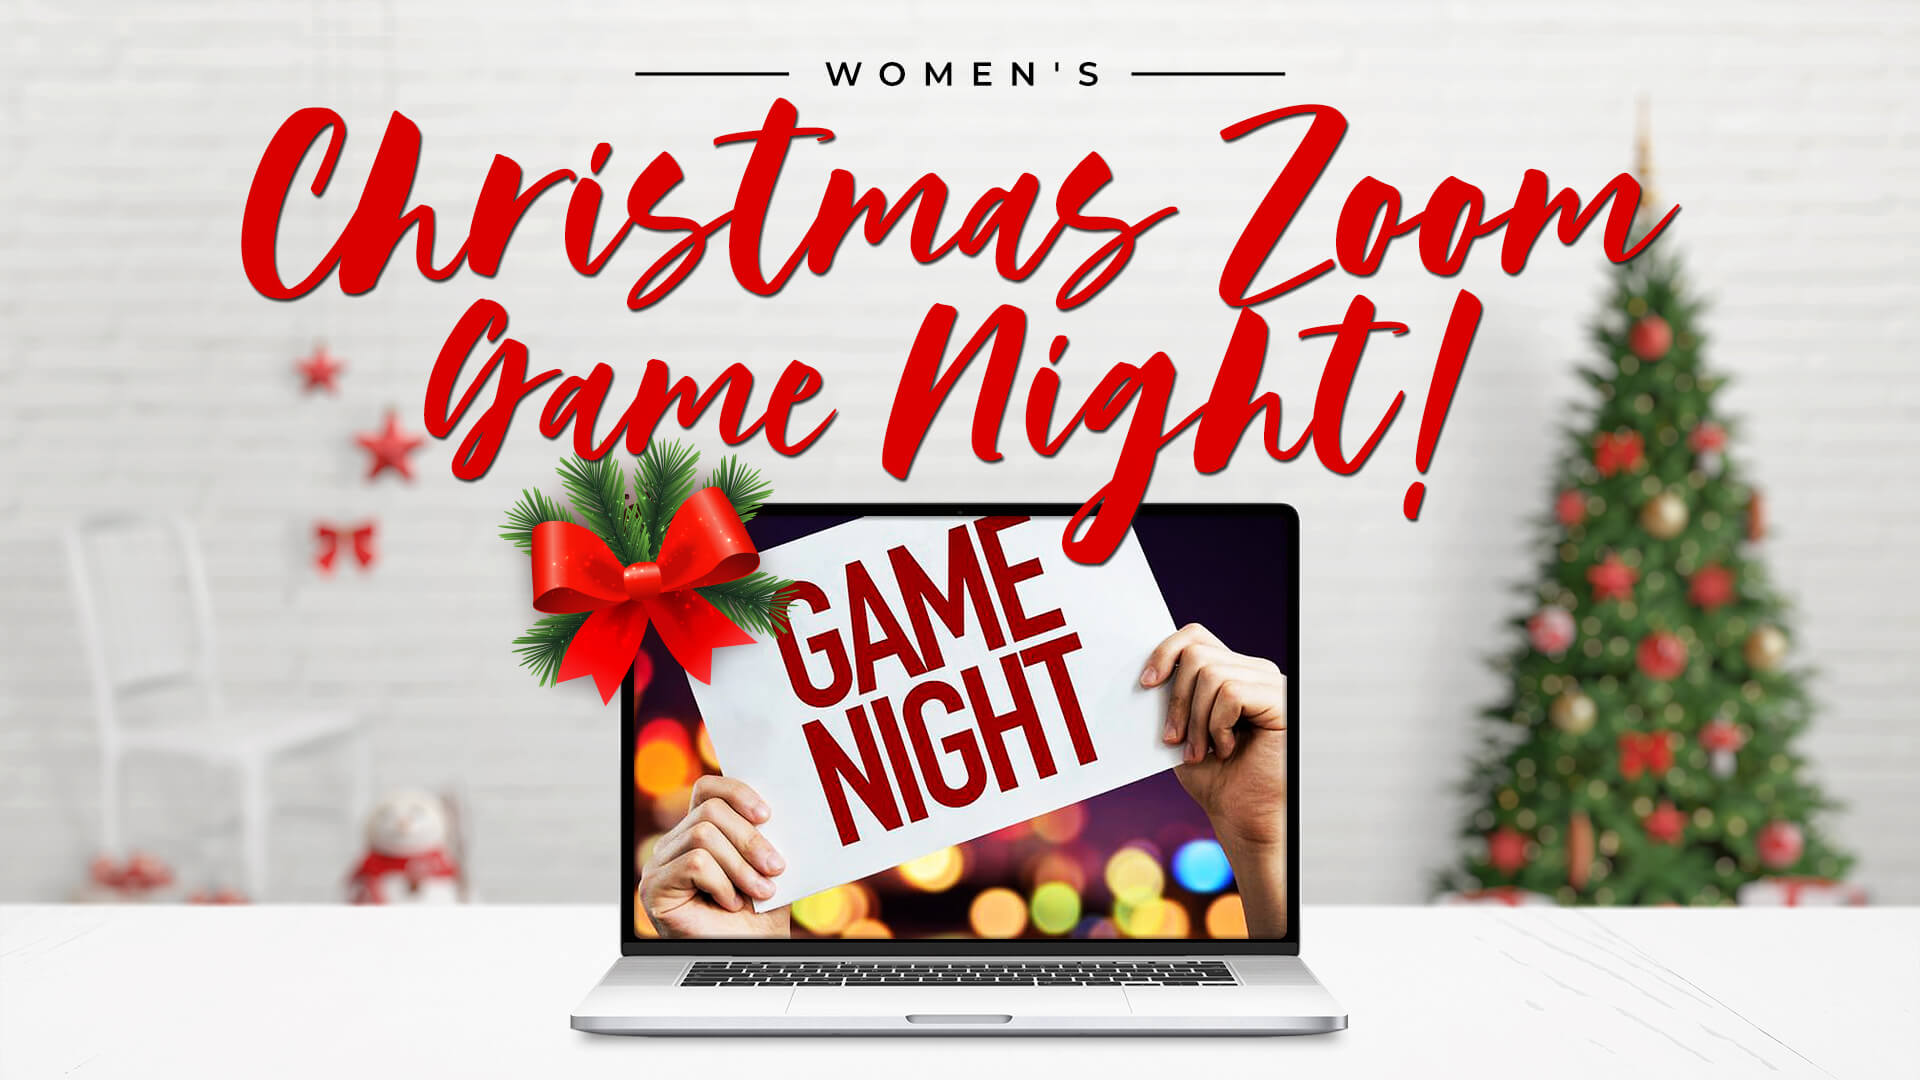 Women's Christmas Zoom Game Night at SVA Church